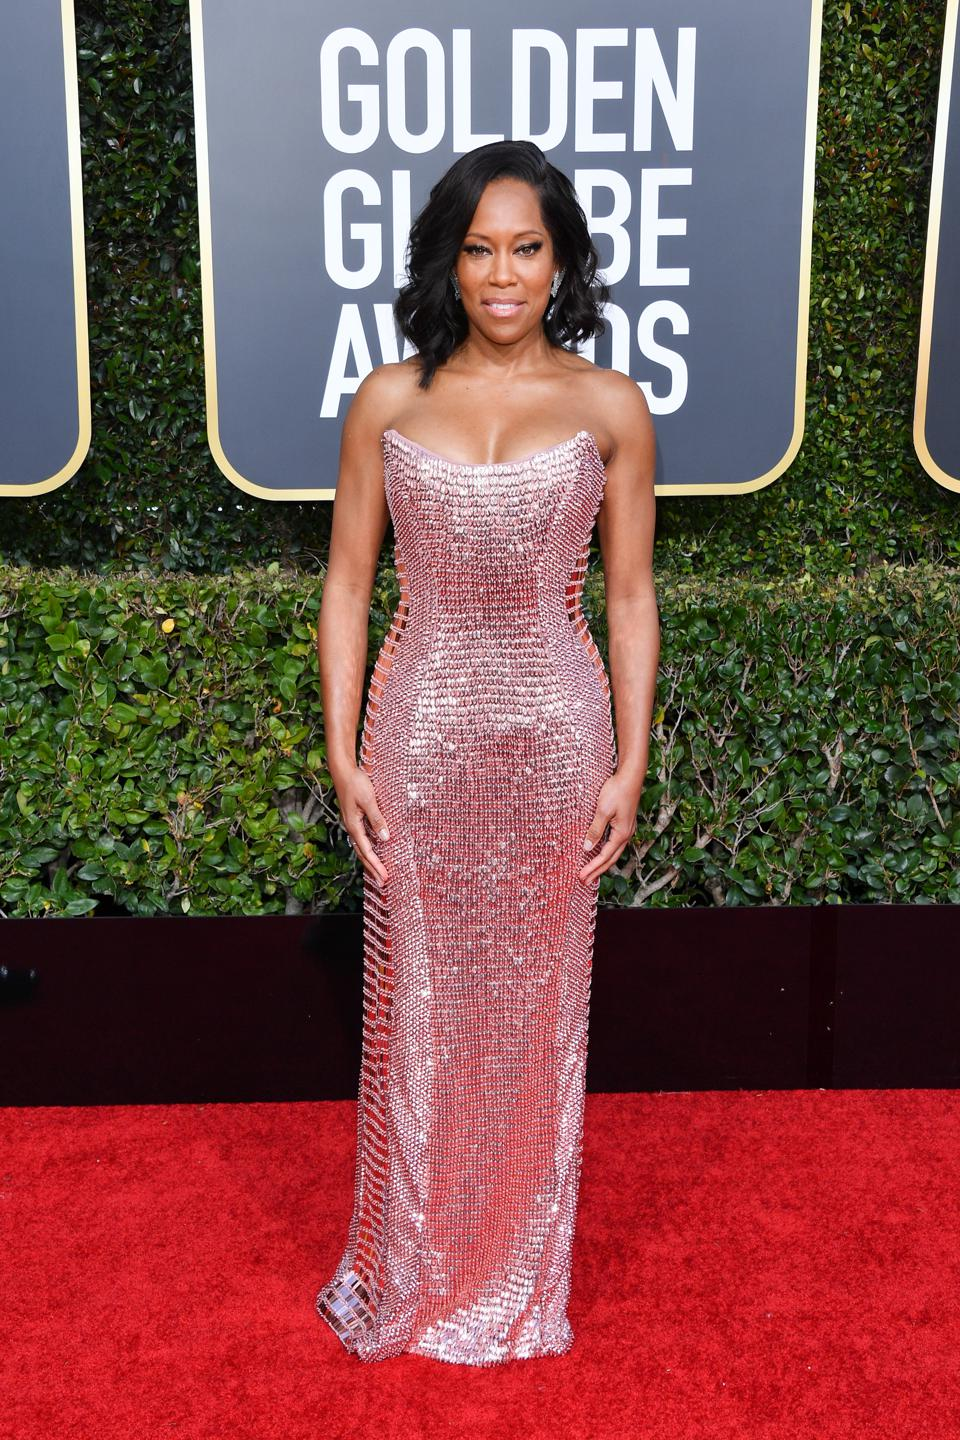 Regina King shows off her curves in a pink gown by Alberta Ferretti.